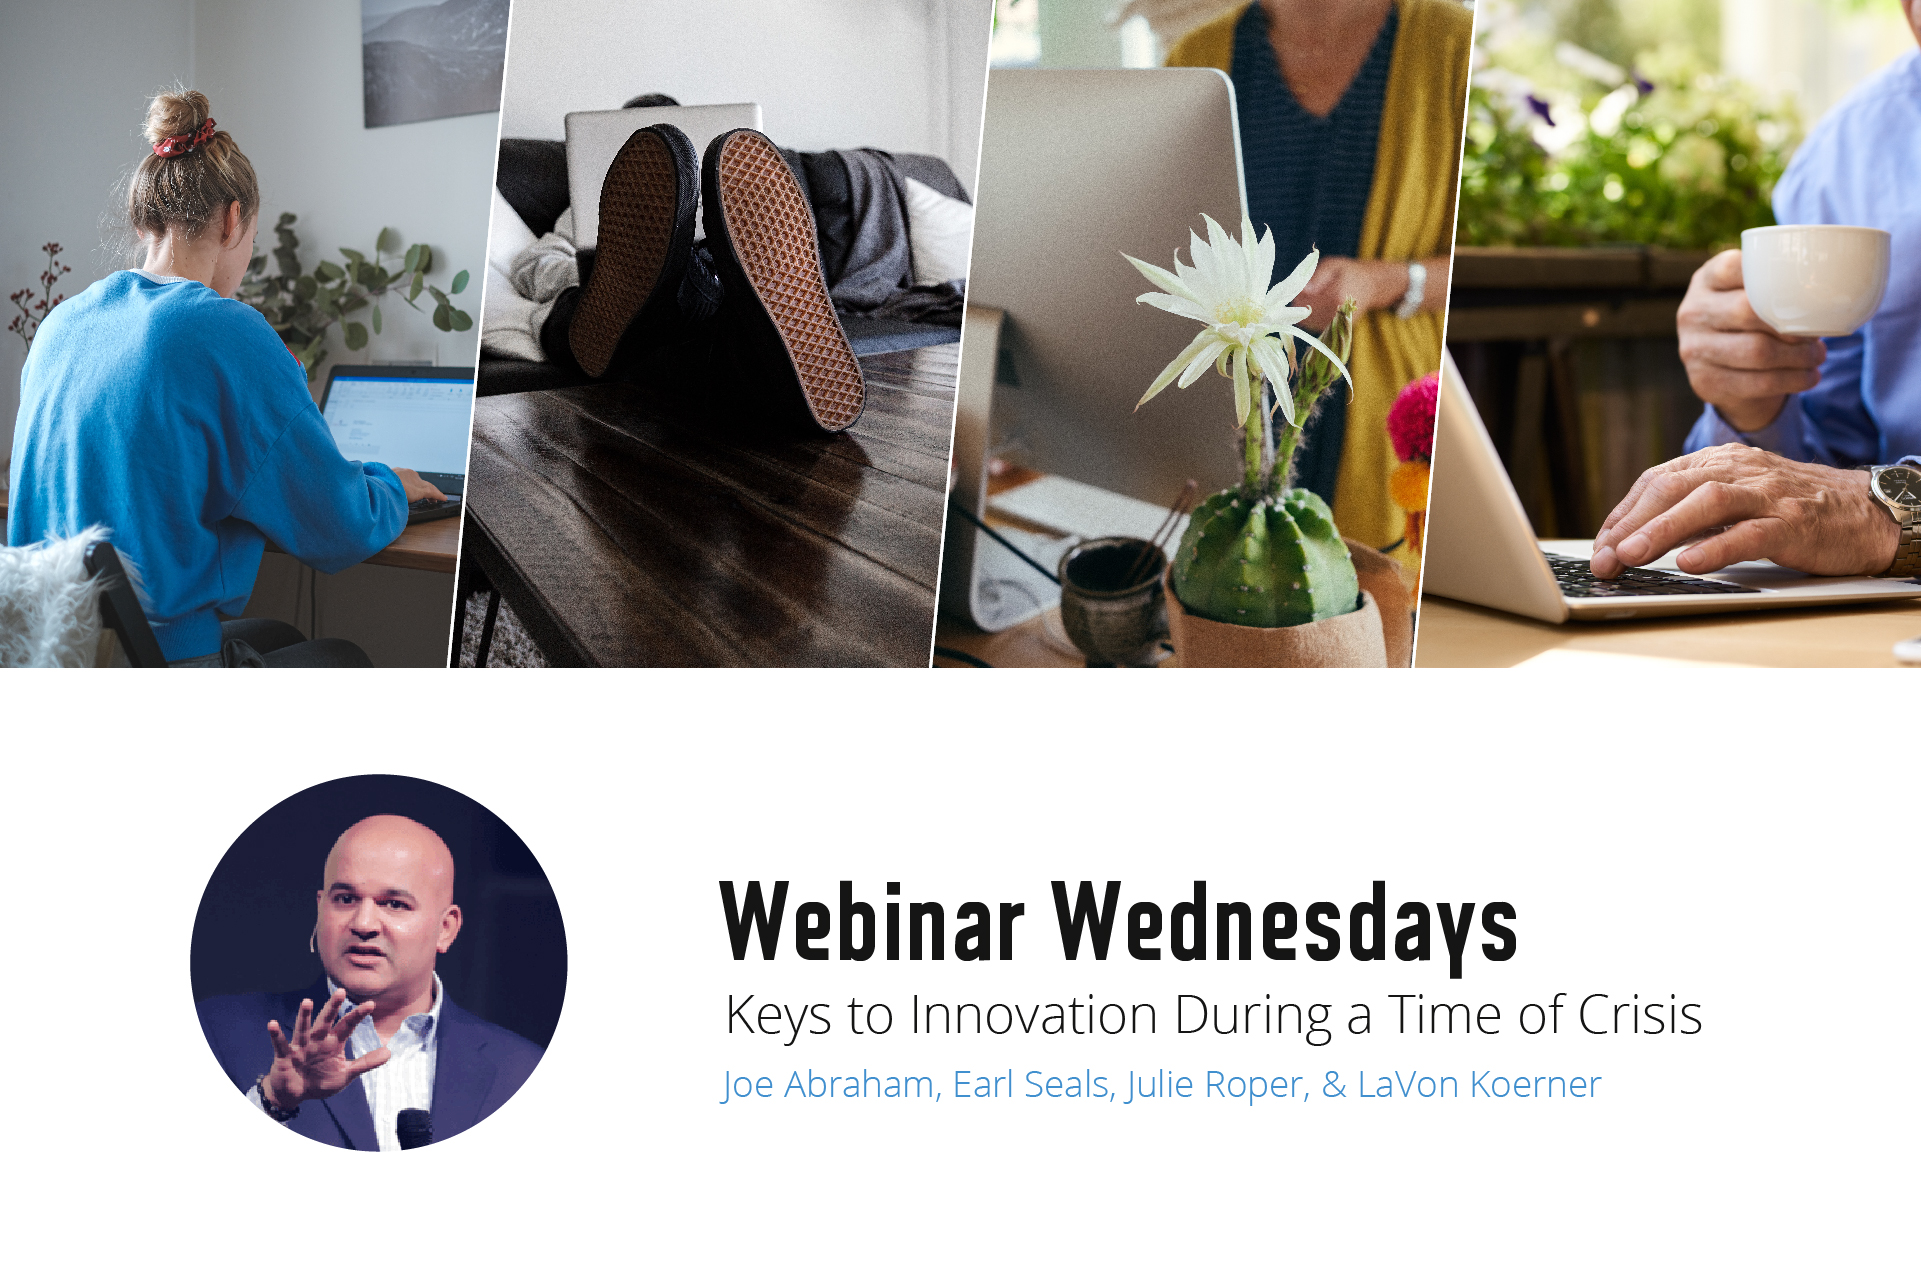 webinar wednesdays keys to innovation